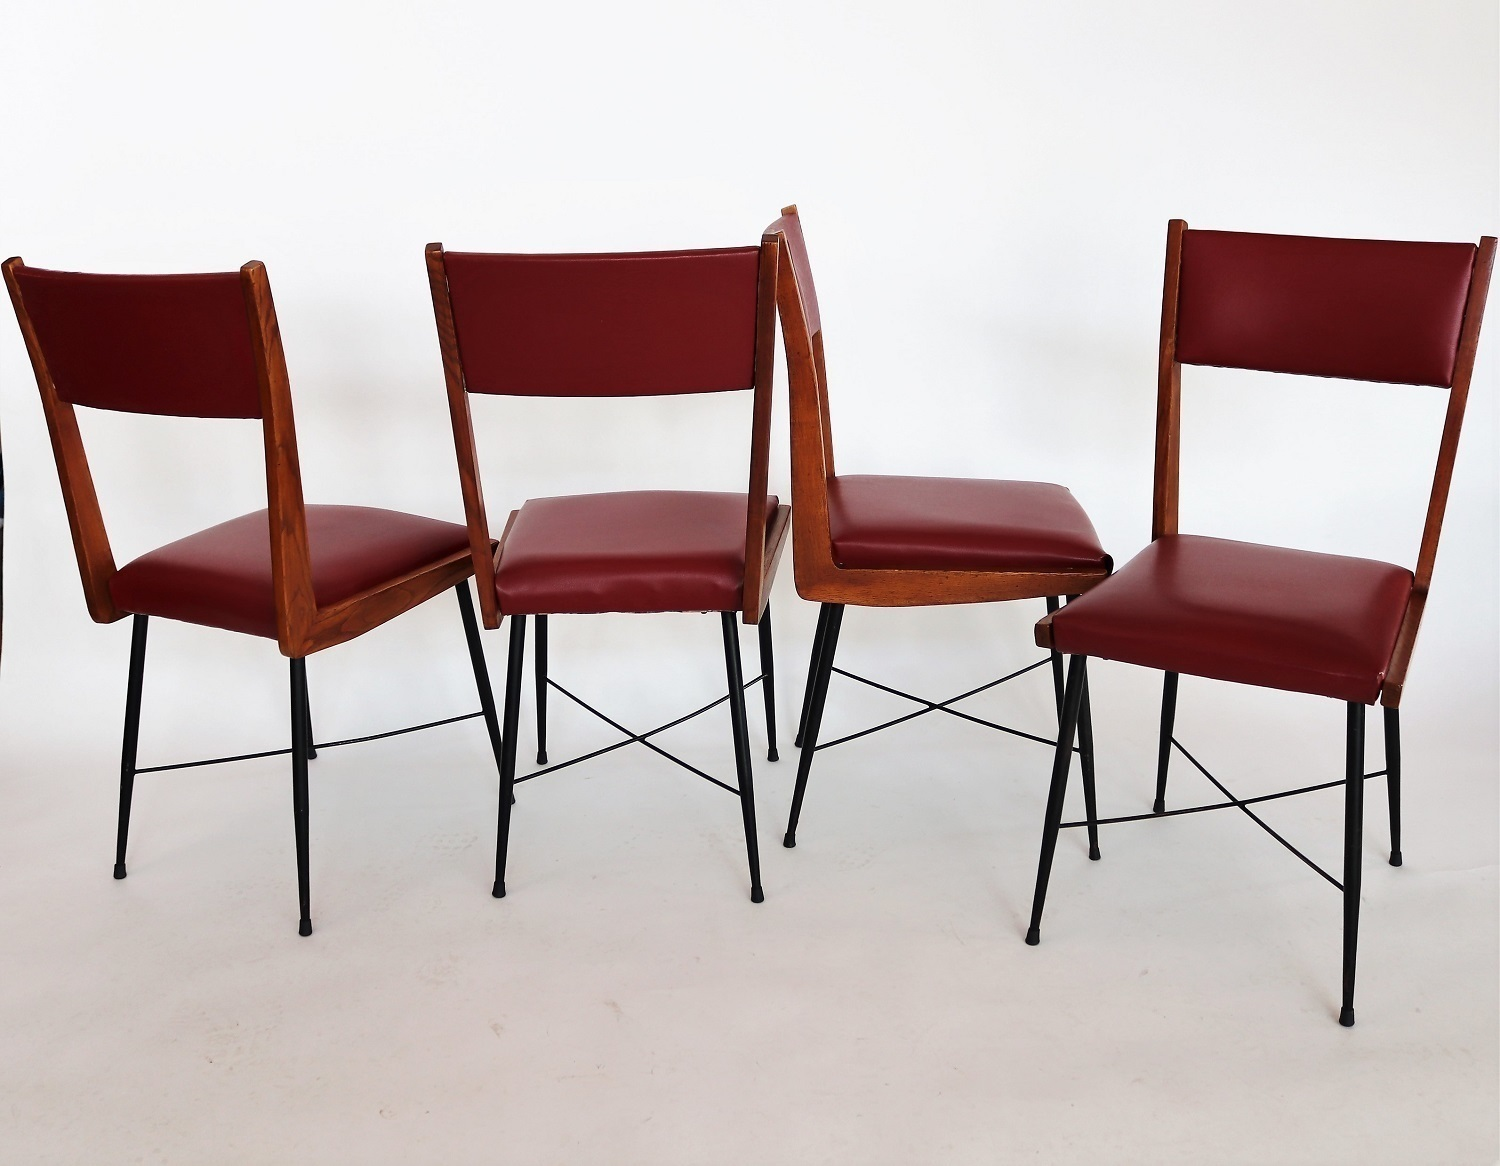 Italian Mid Century Dining Chairs In Chestnut And Leatherette 1950s